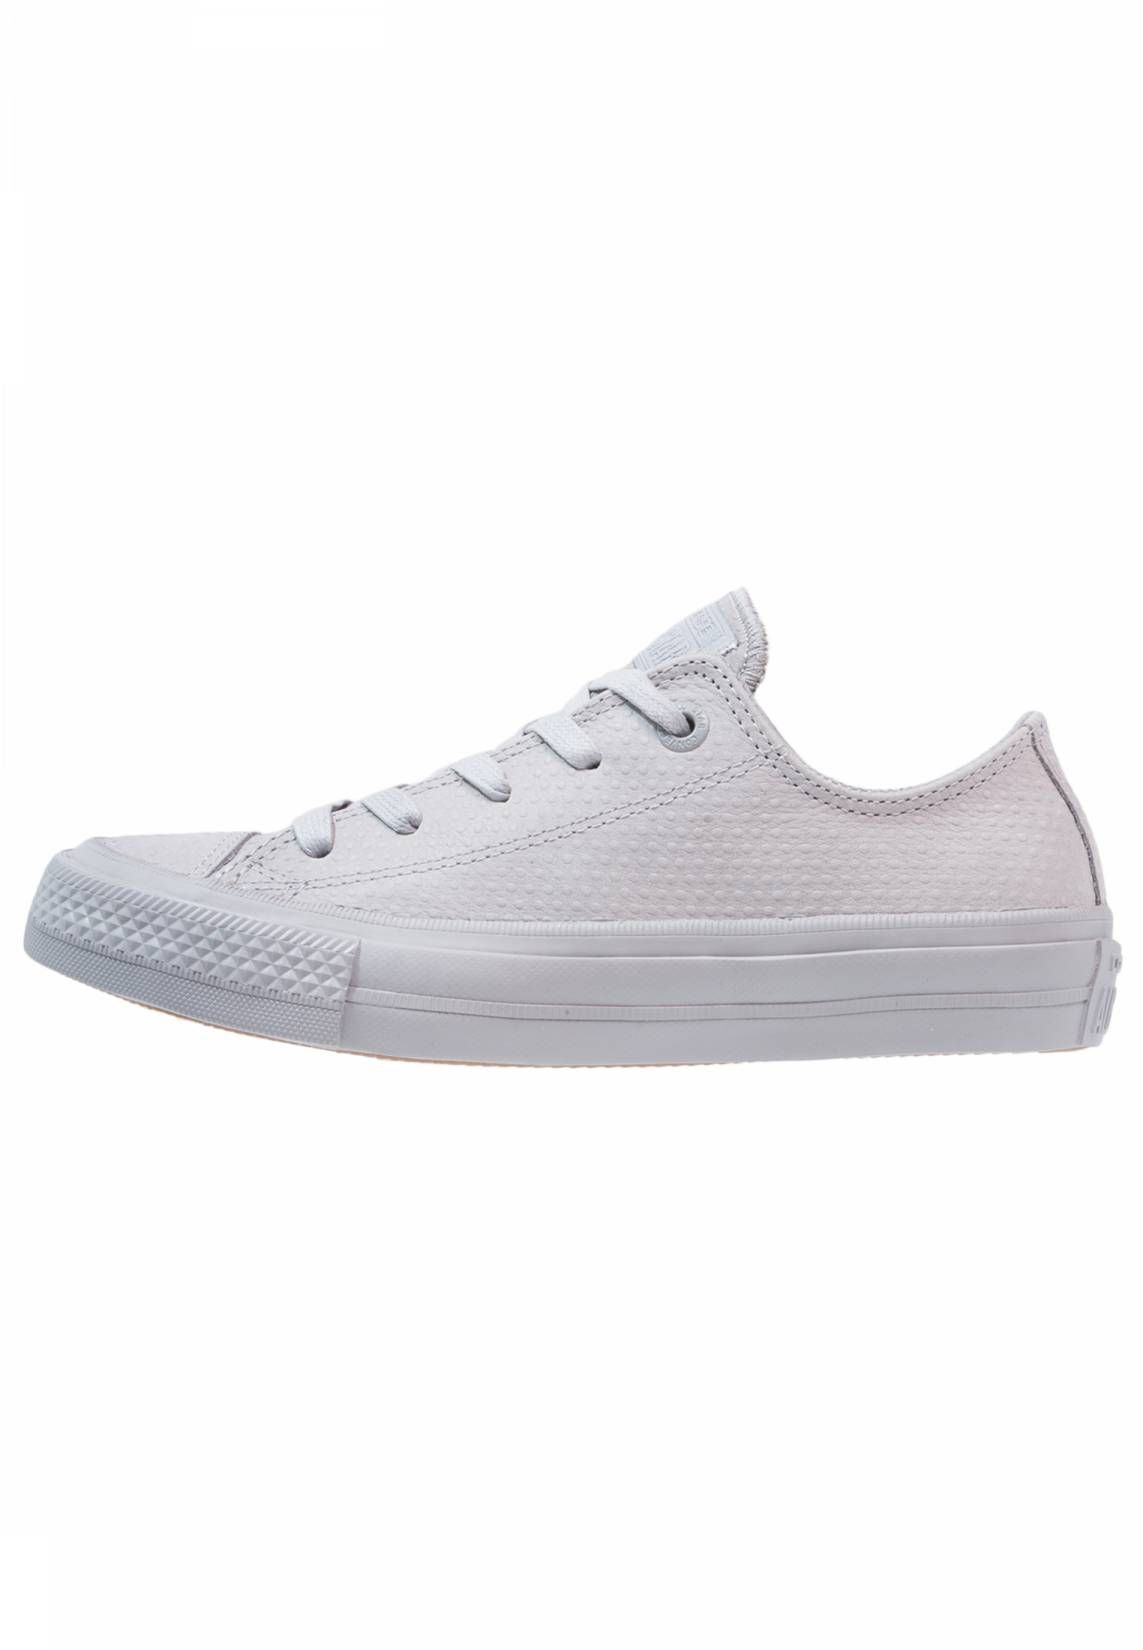 Converse. CHUCK TAYLOR ALL STAR II Trainers dolphin